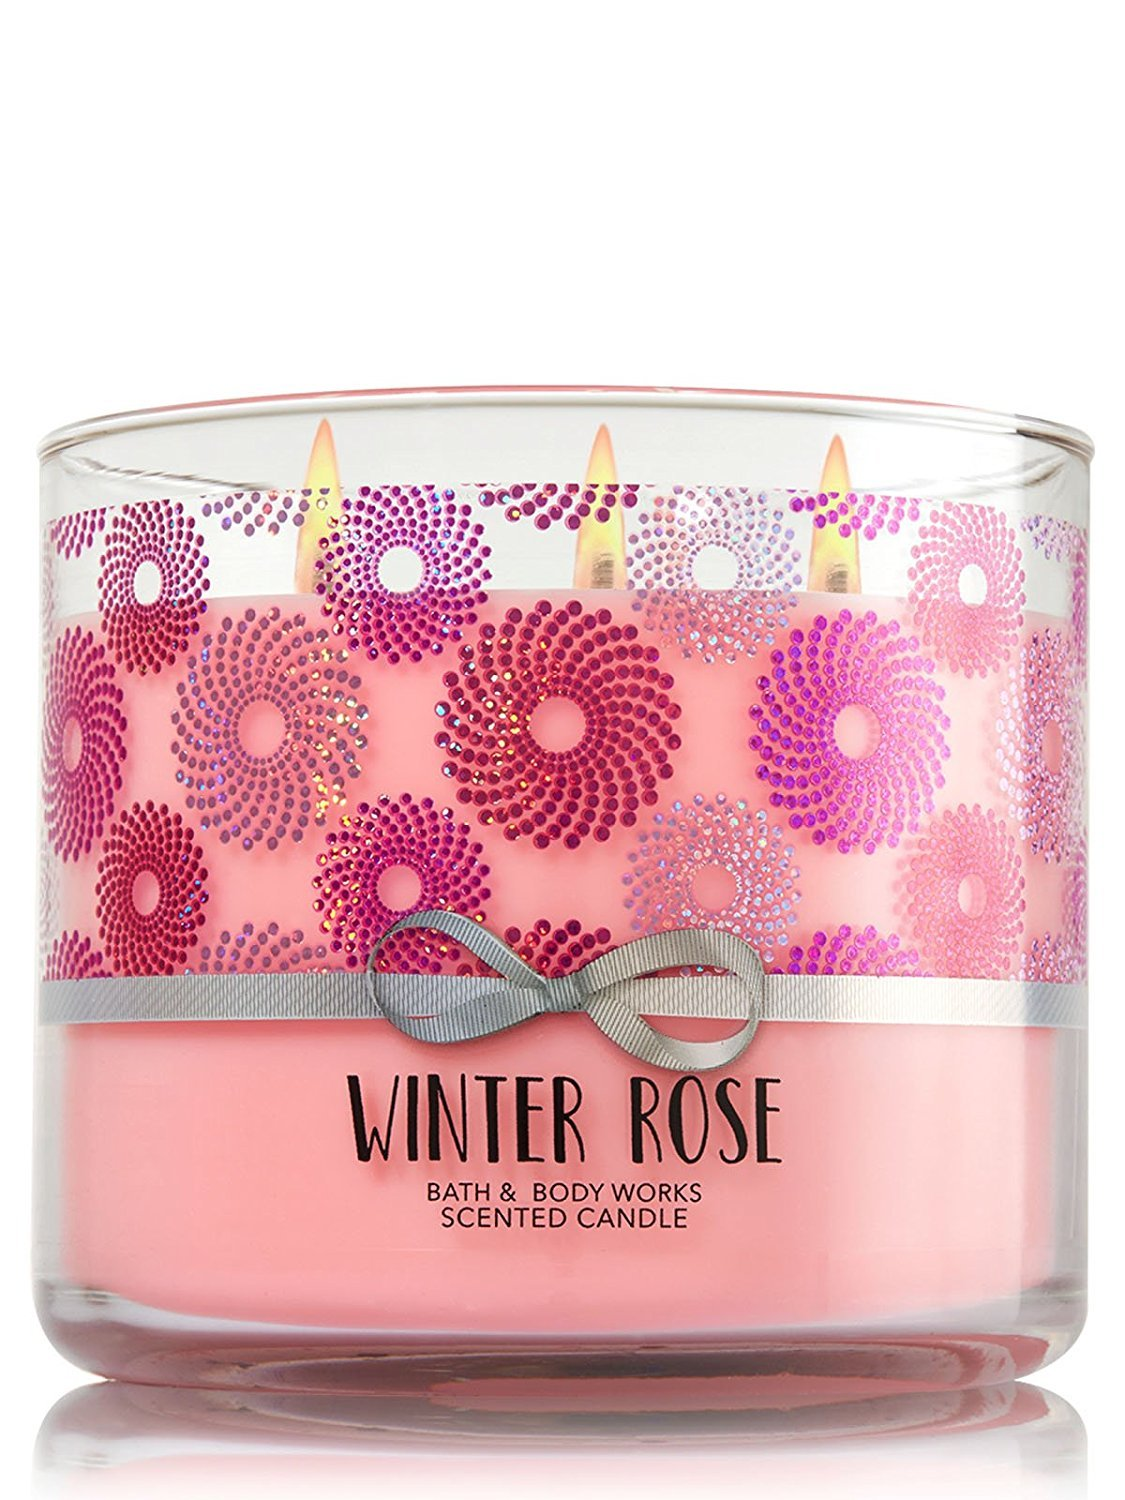 Bath & Body Works 3-Wick Candle in Winter Rose by Bath & Body Works